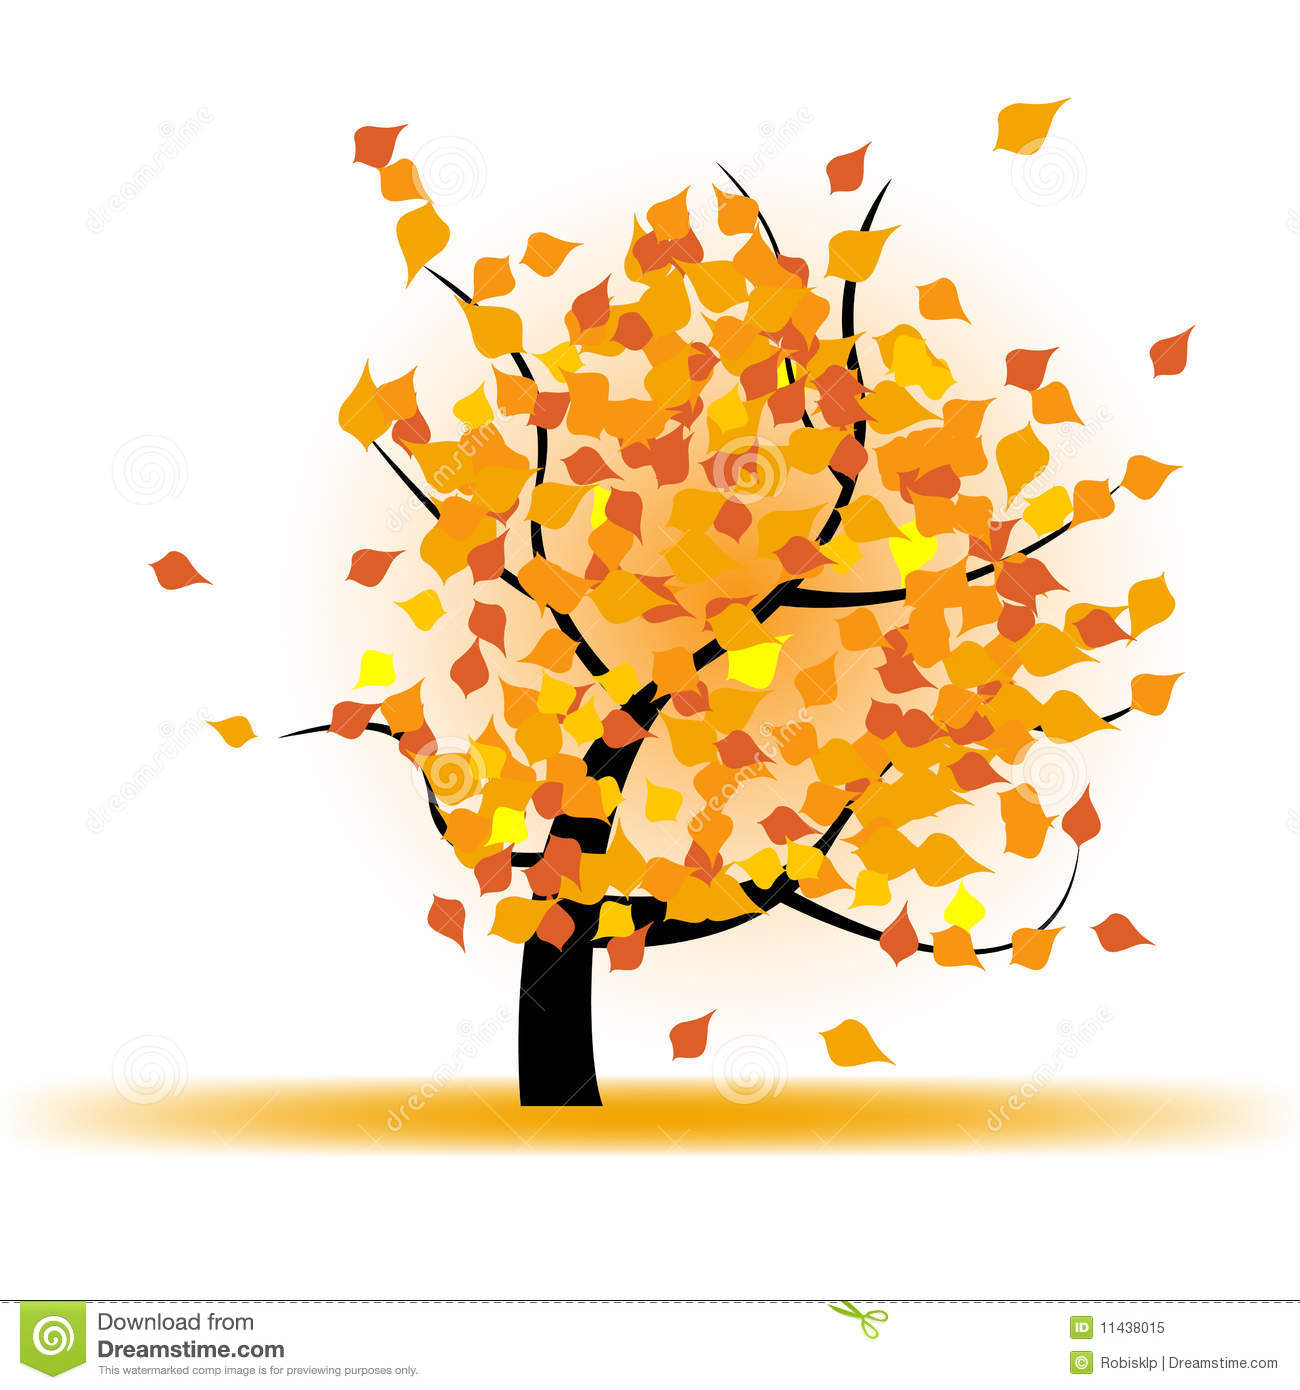 Autumn Tree Leaf Fall Animated Wallpaper Autumn Tree With Falling Leaves Stock Vector